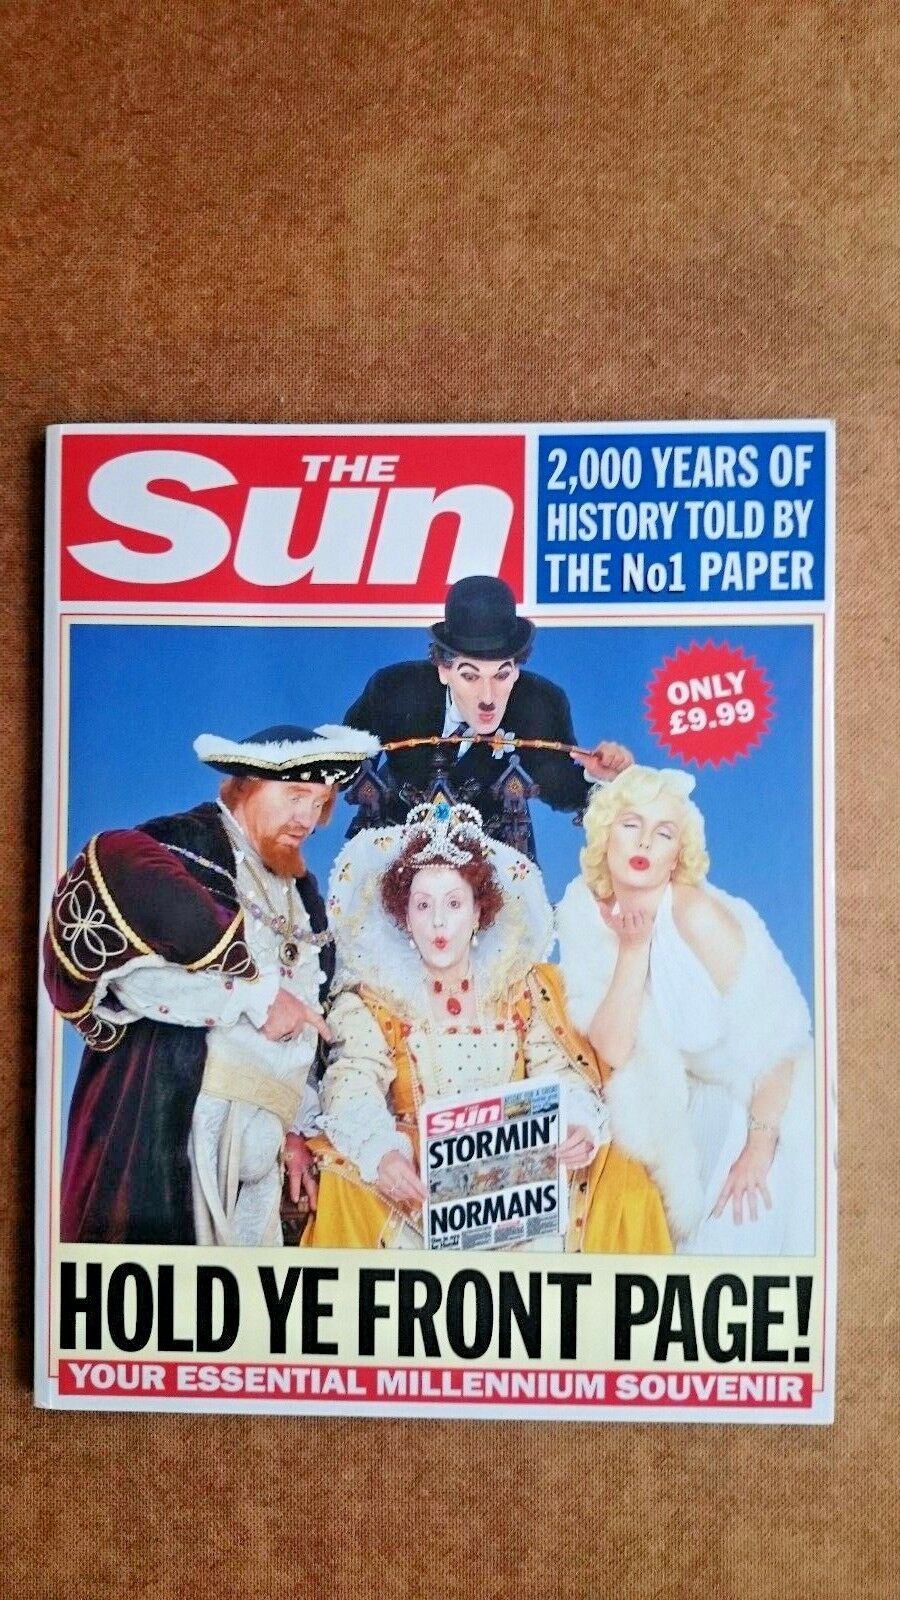 The  Sun : Hold Ye Front Page - 2000 Years of History on the Front Page